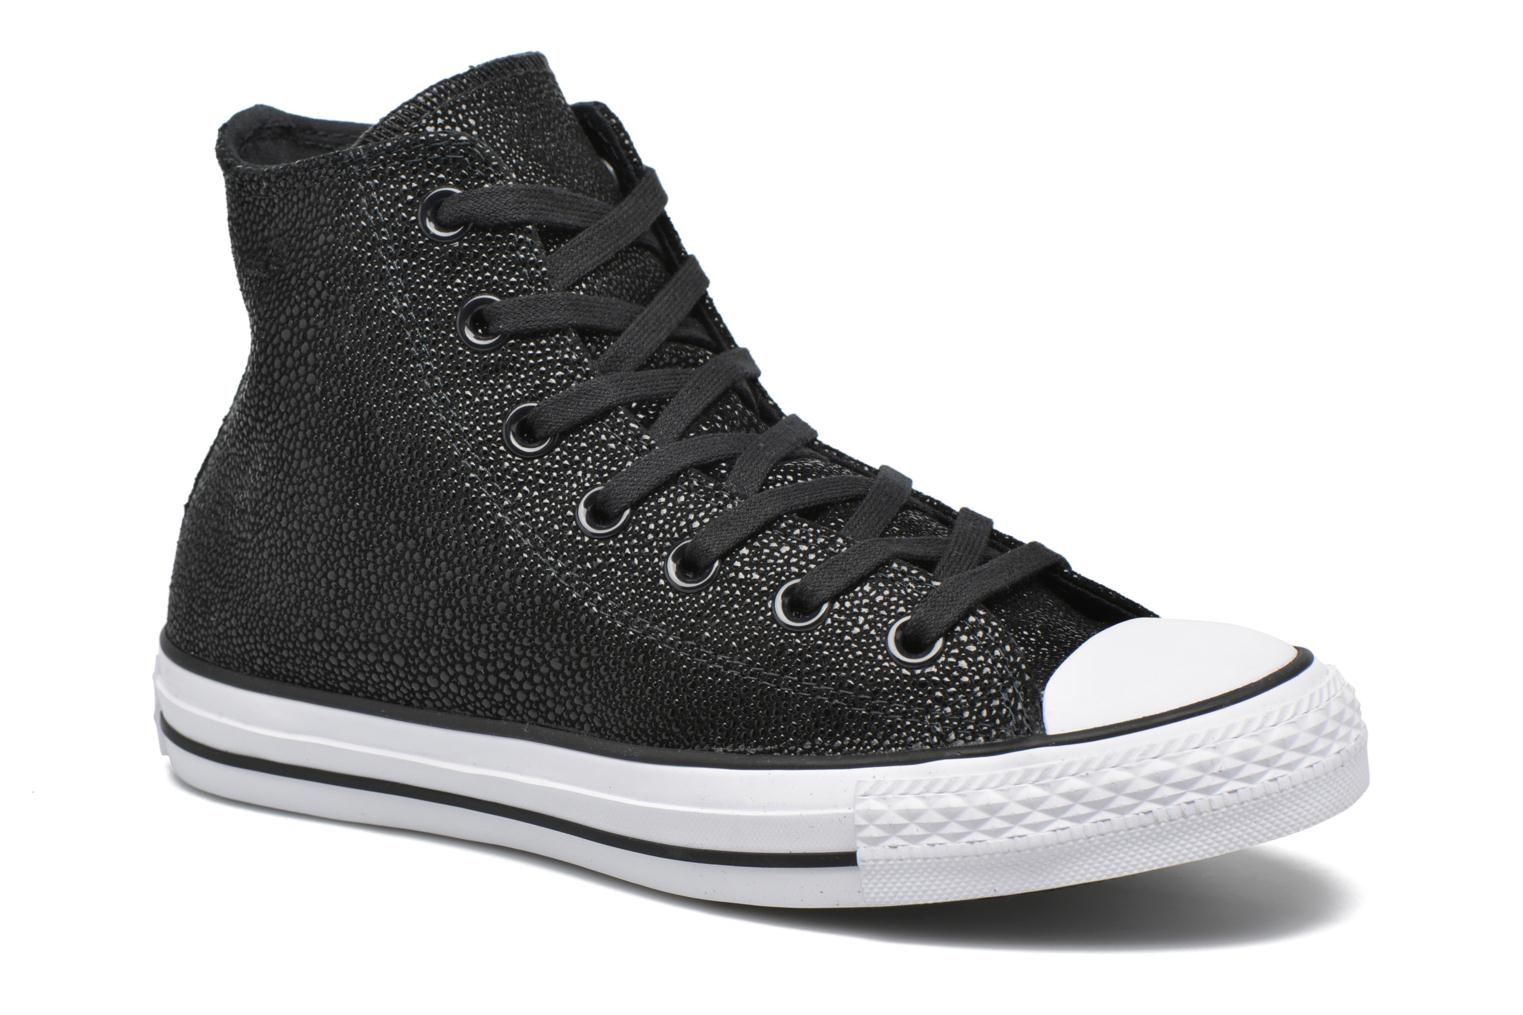 Ctas Stingray Metallic Hi Blackblack